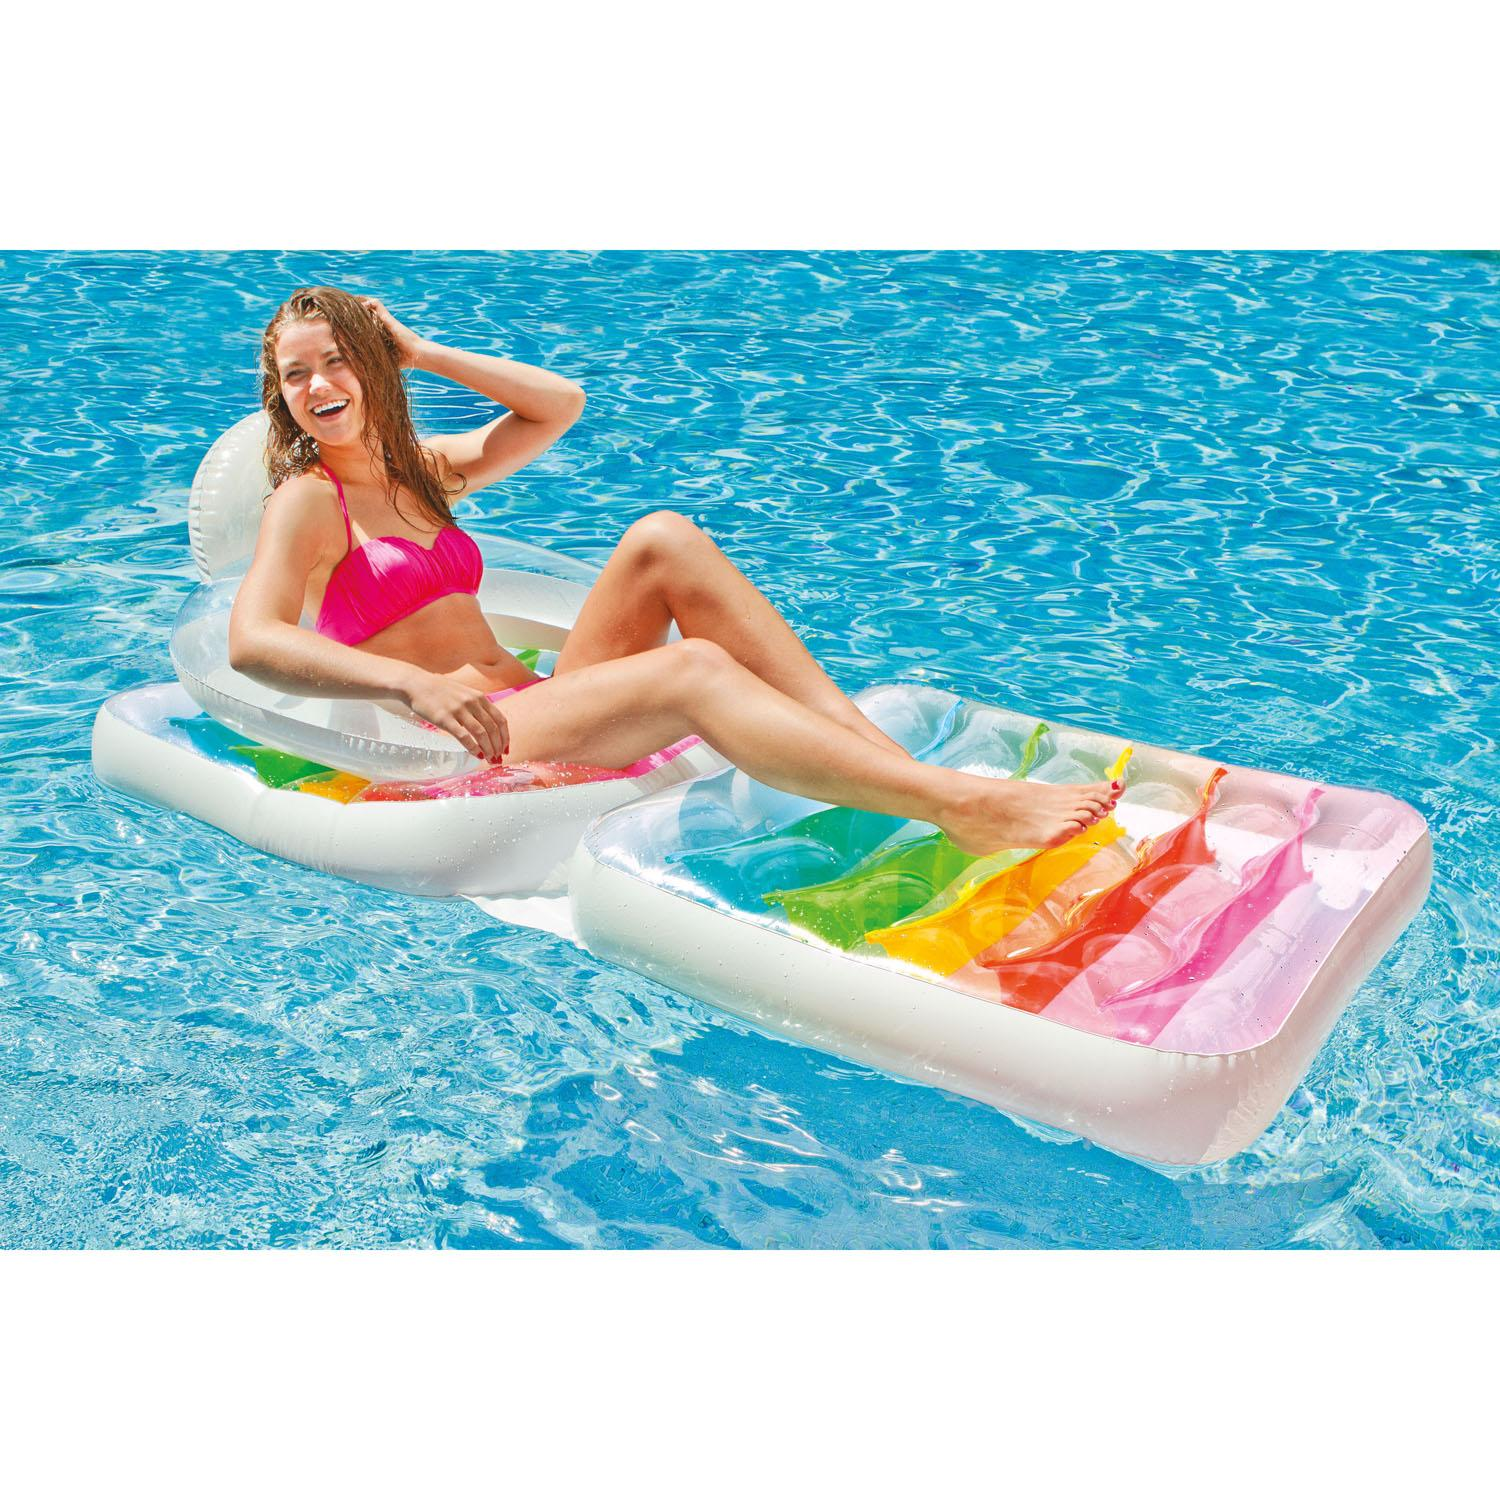 Intex Deluxe Inflatable Sun Lounger Swimming Pool Air-Bed Beach Seat/Chair Lilo : eBay